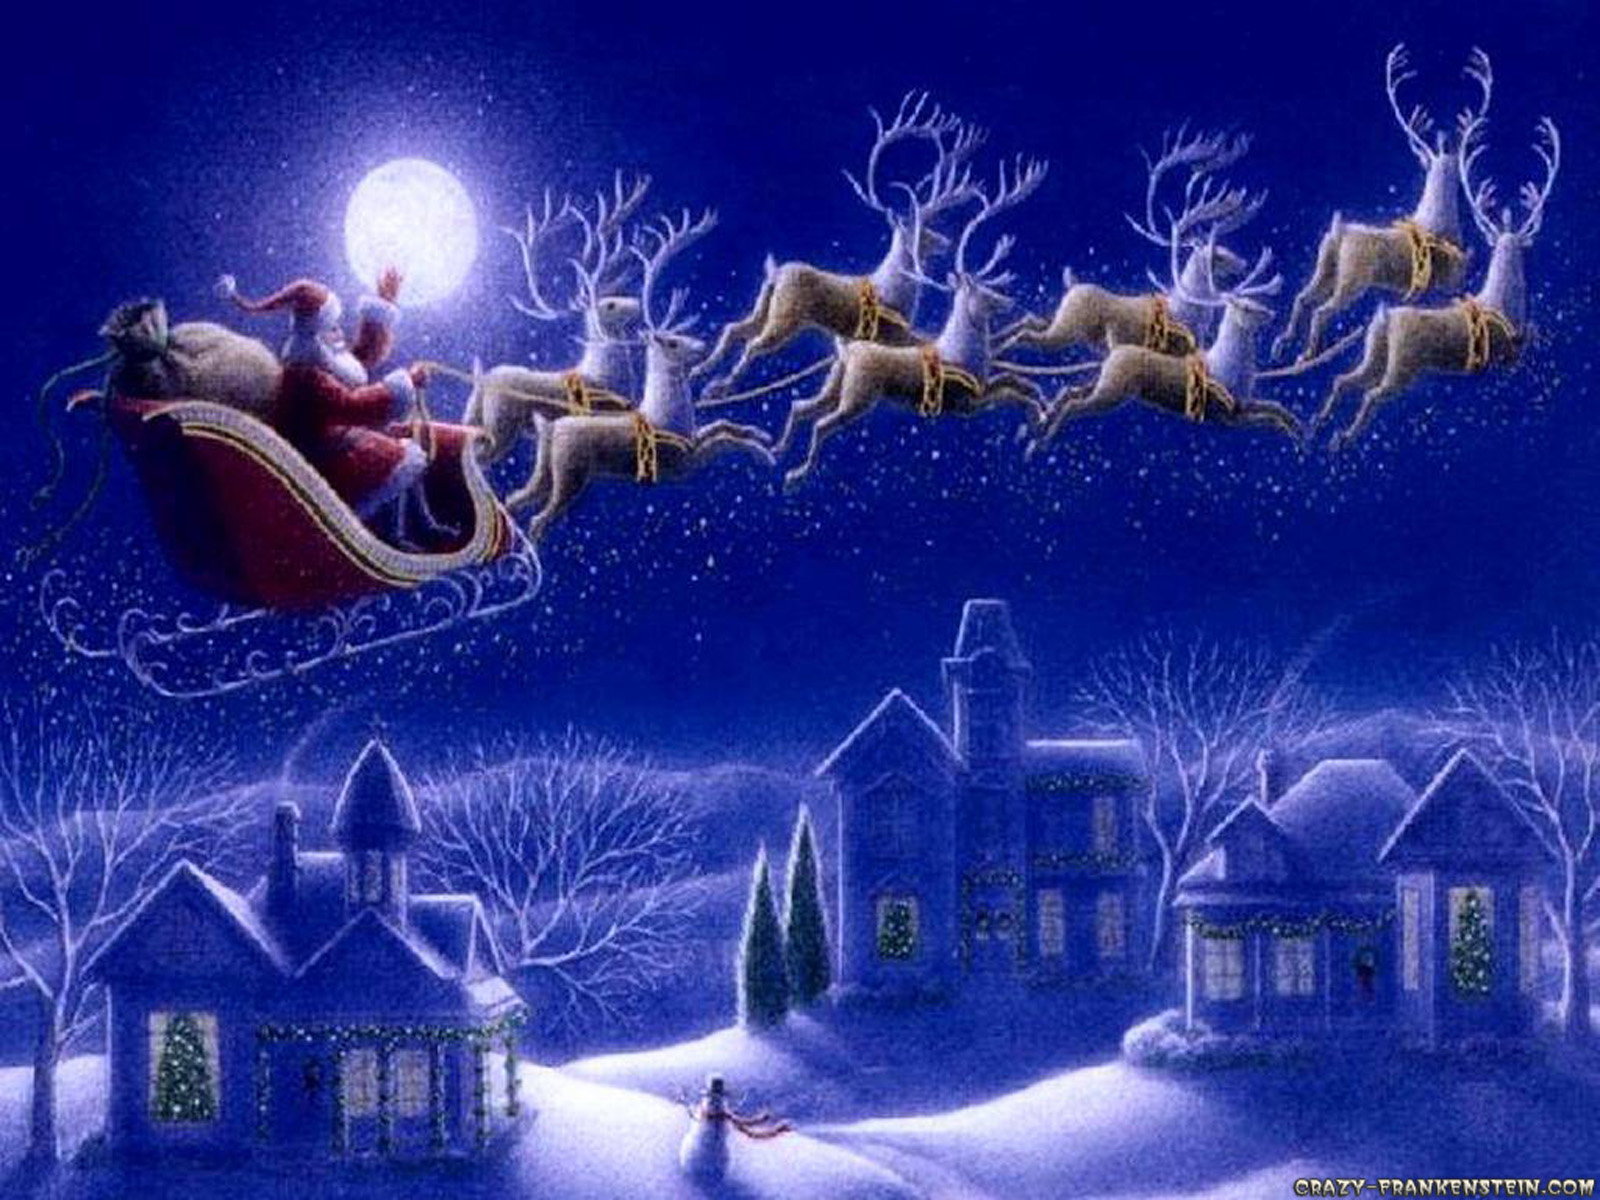 Merry Christmas 2013 Wallpapers HD   My image